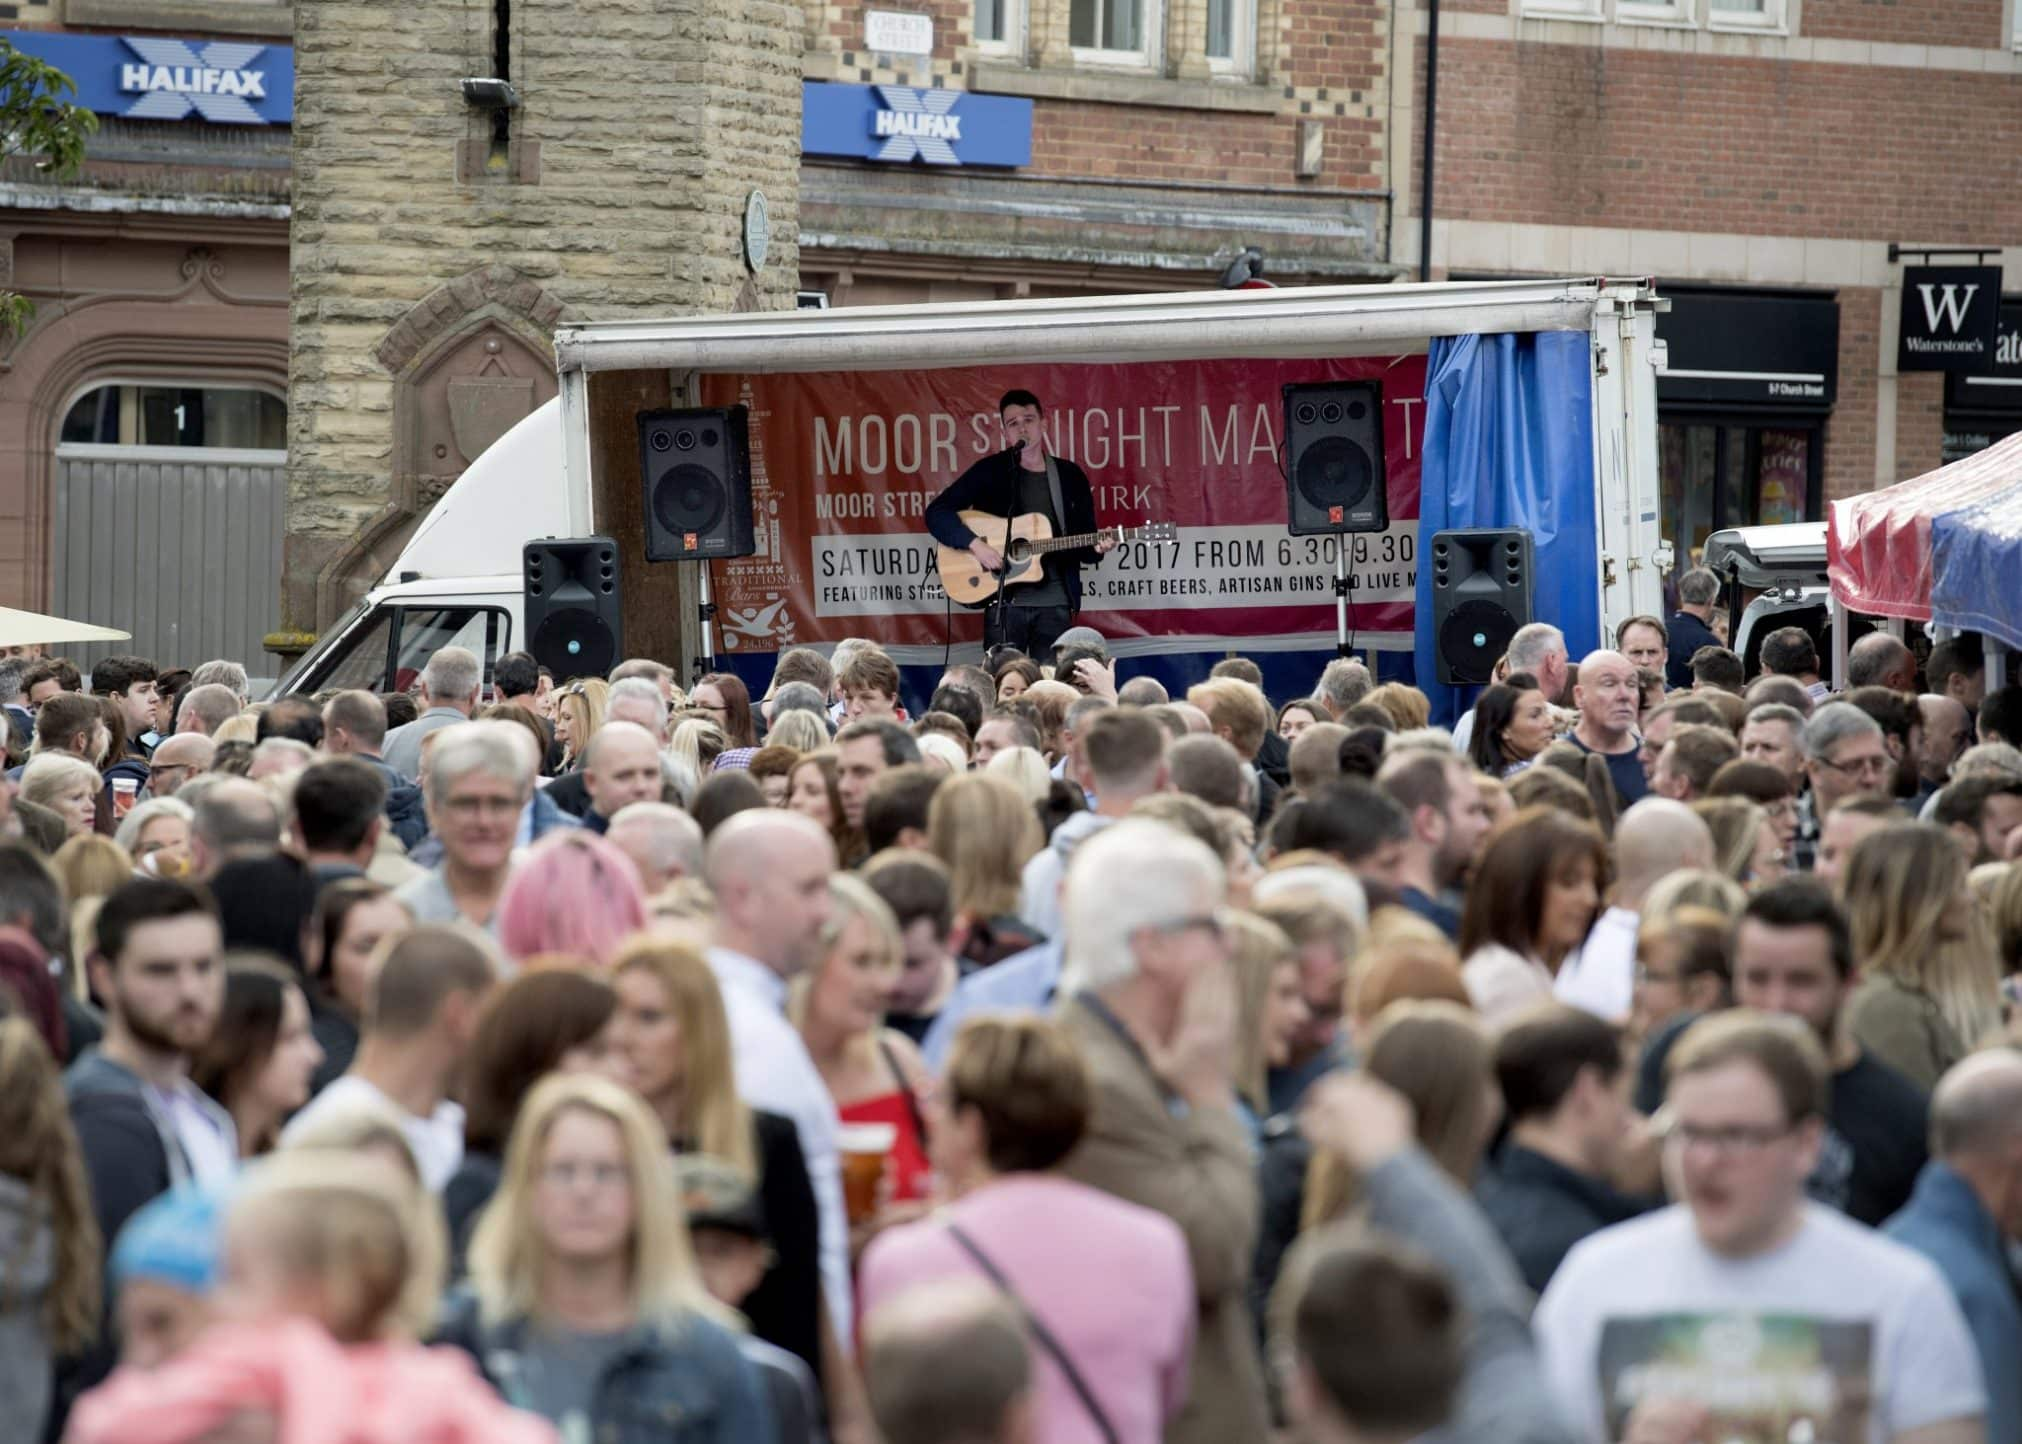 A crowd at Moor St Night Market in Ormskirk